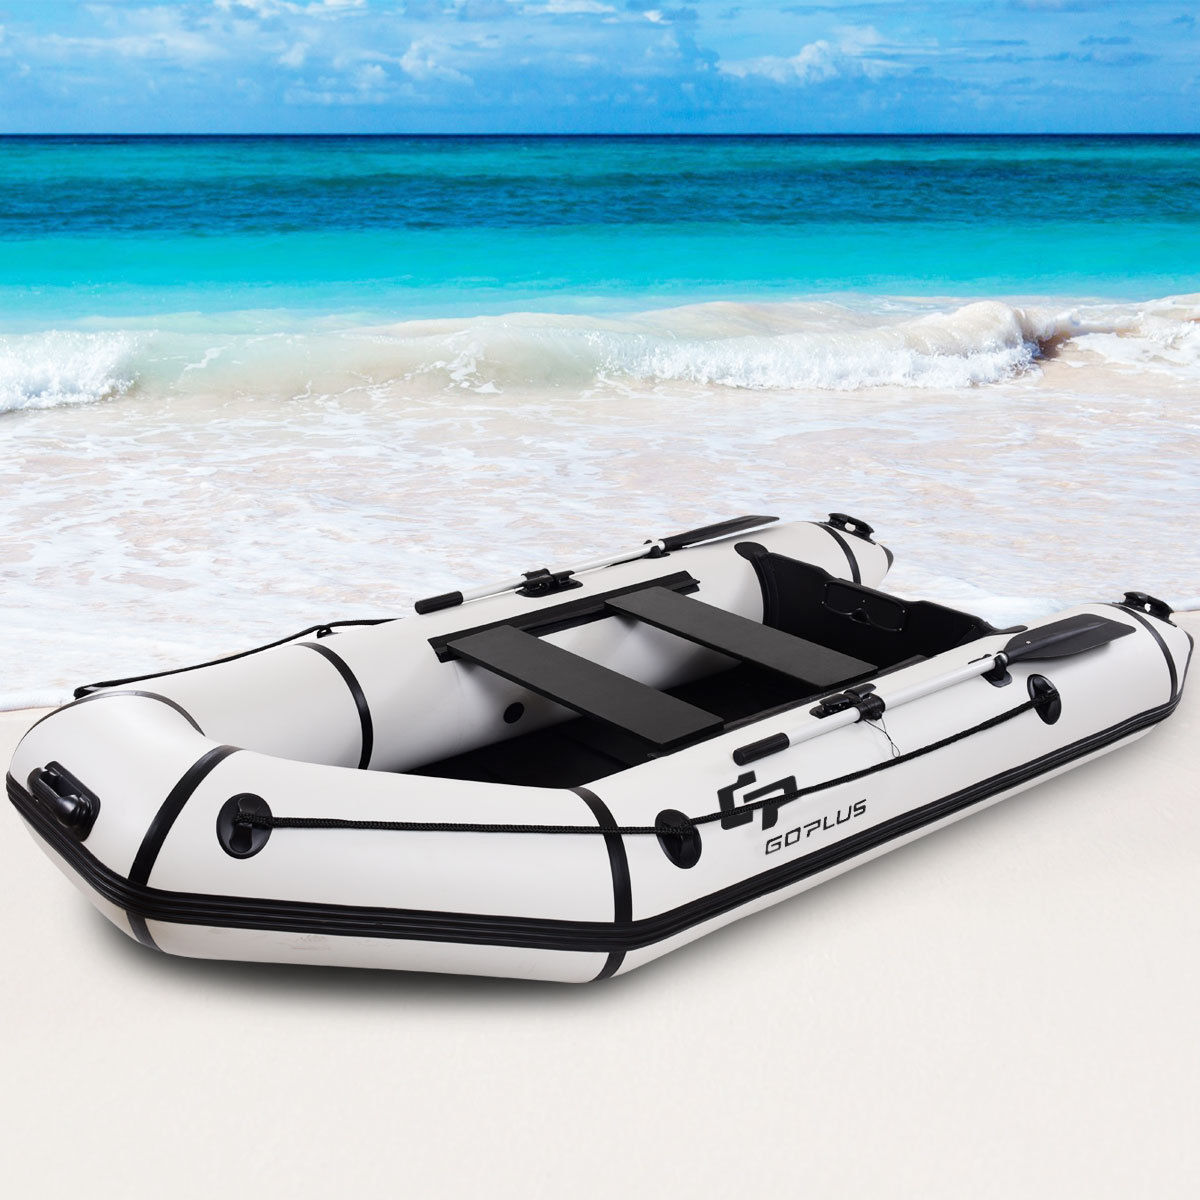 Goplus 4-Person 10FT Inflatable Dinghy Boat Fishing Tender Rafting Water Sports by Costway